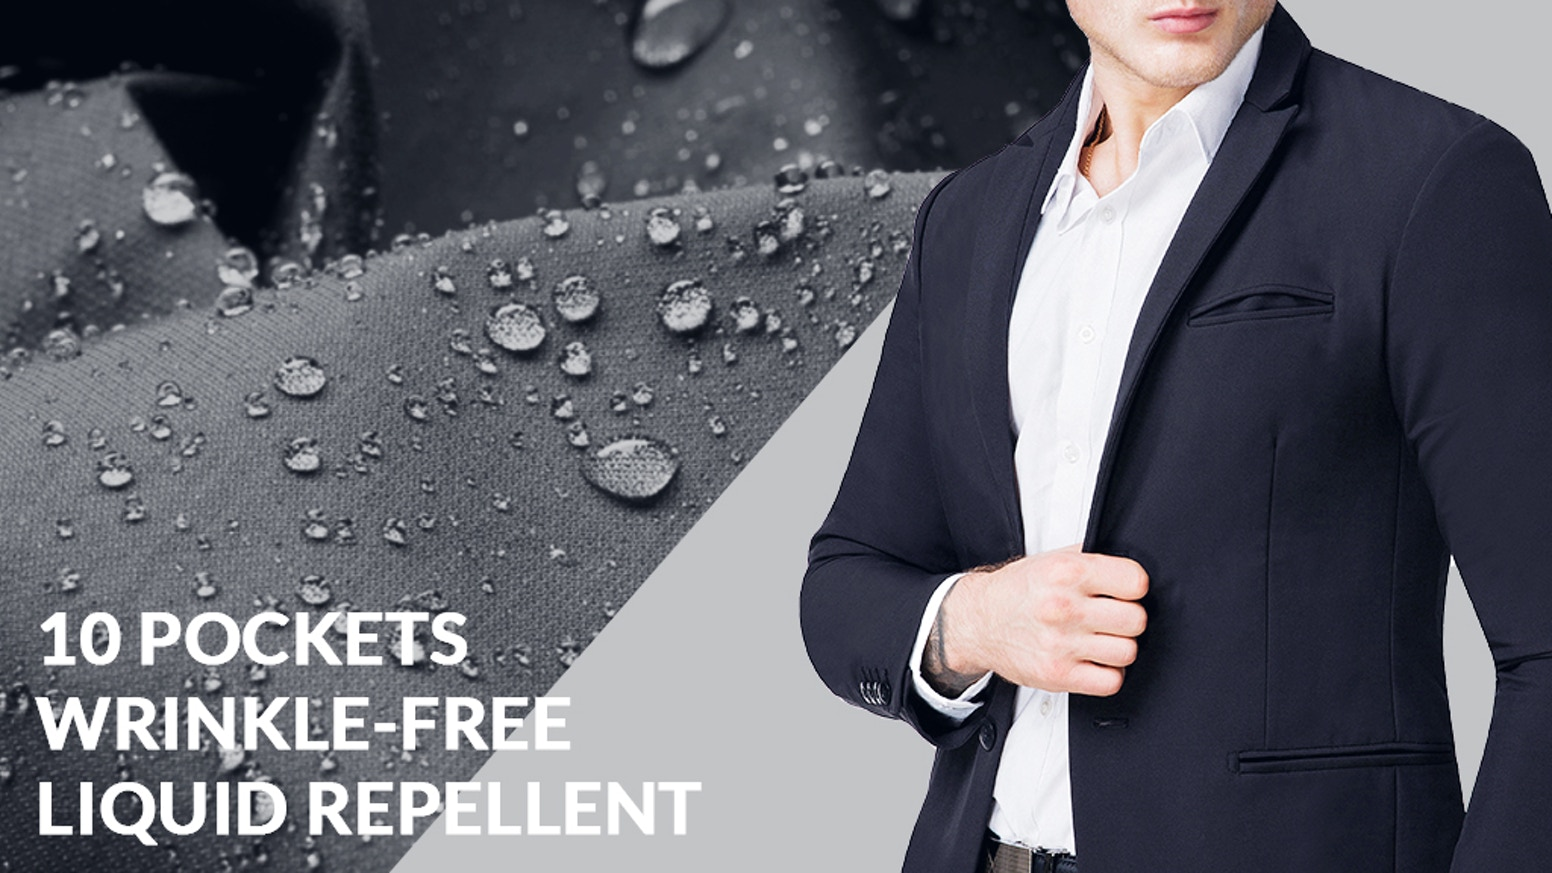 Liquid Repellent | Wrinkle-Free | 4 Way Full-Stretch | Machine Washable | Breathable Blazer with 10 Pockets for Your Daily Essentials